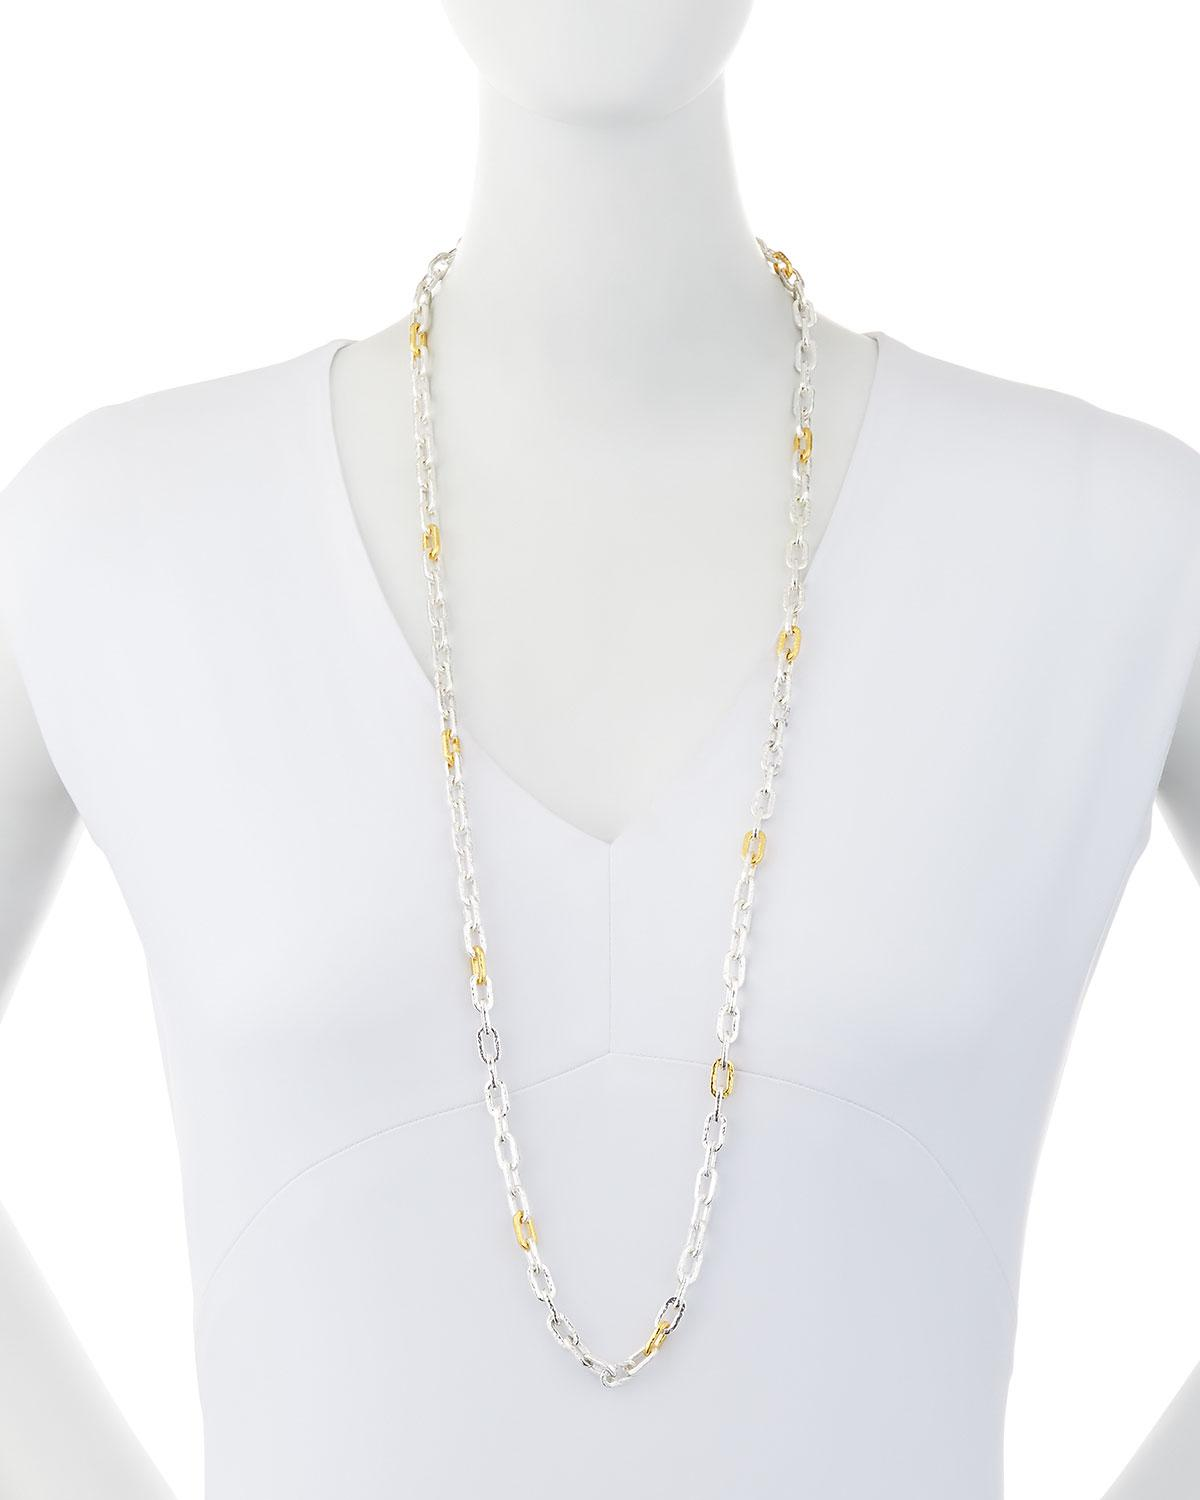 Gurhan Two-Tone Oval-Link Chain Long Necklace, 36L